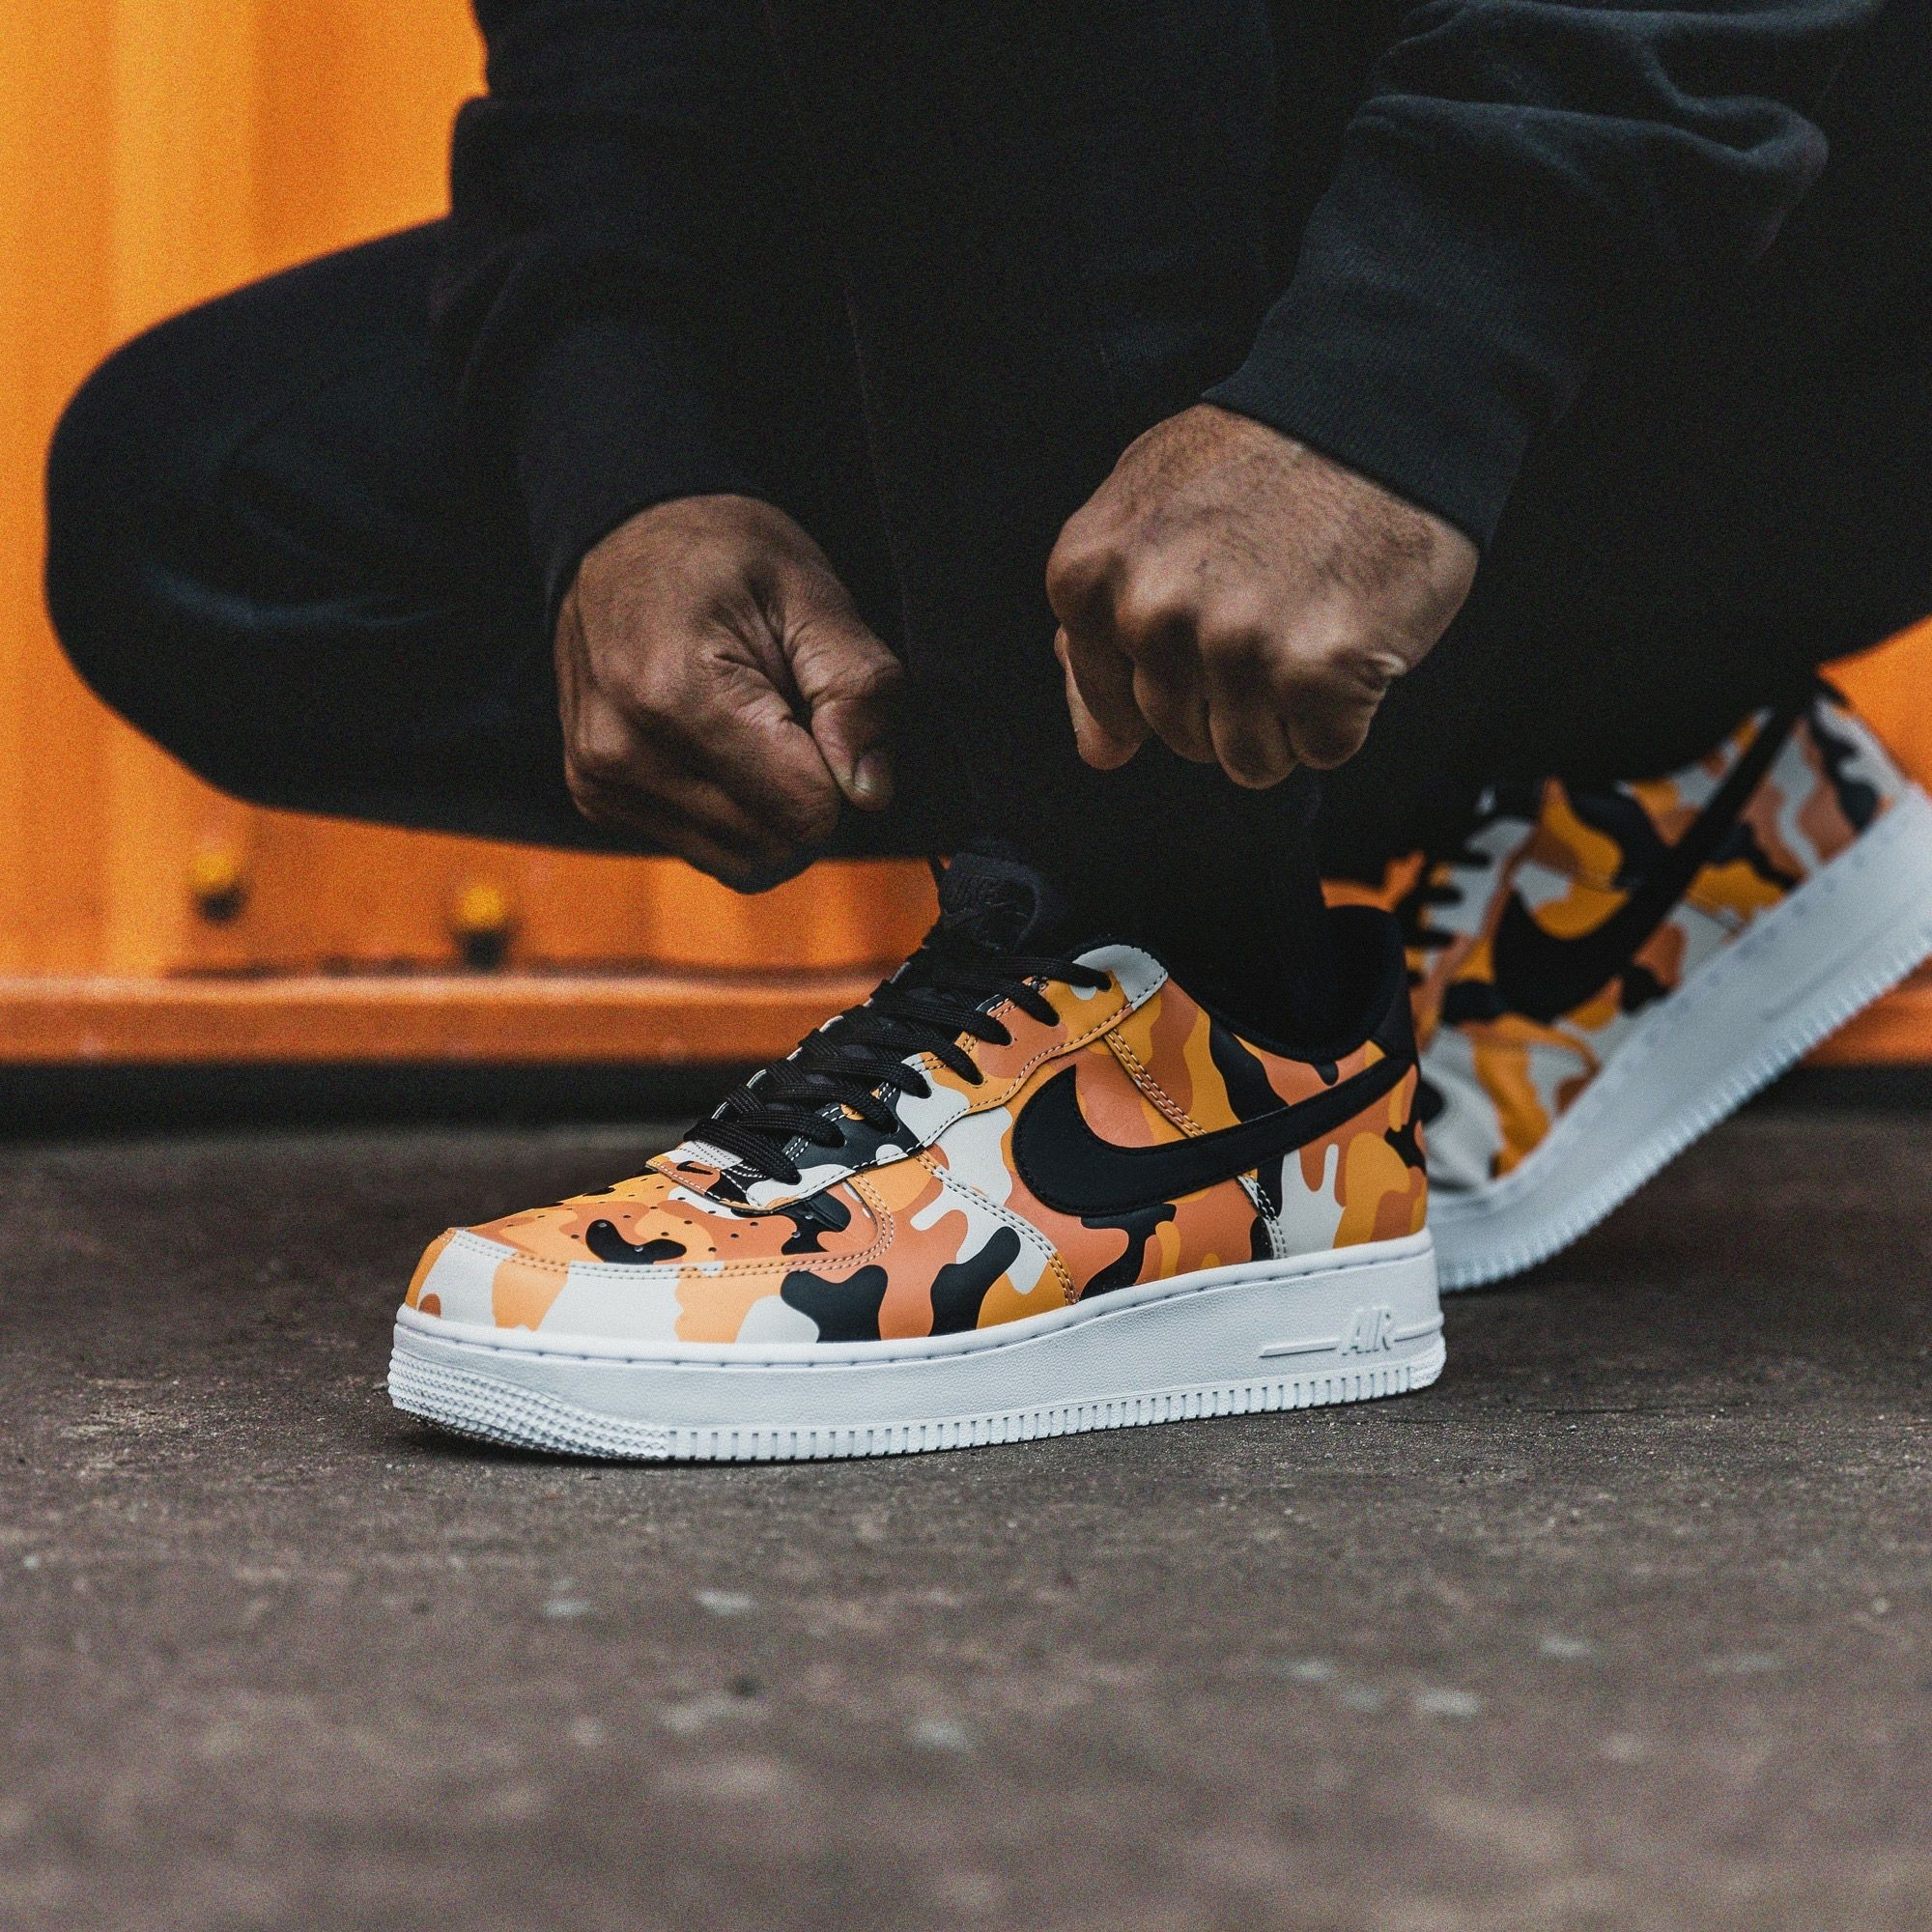 42926bfe64344 Nike Air Force 1 Low: Camo | Fashion | Nike, Sneakers, Nike air force